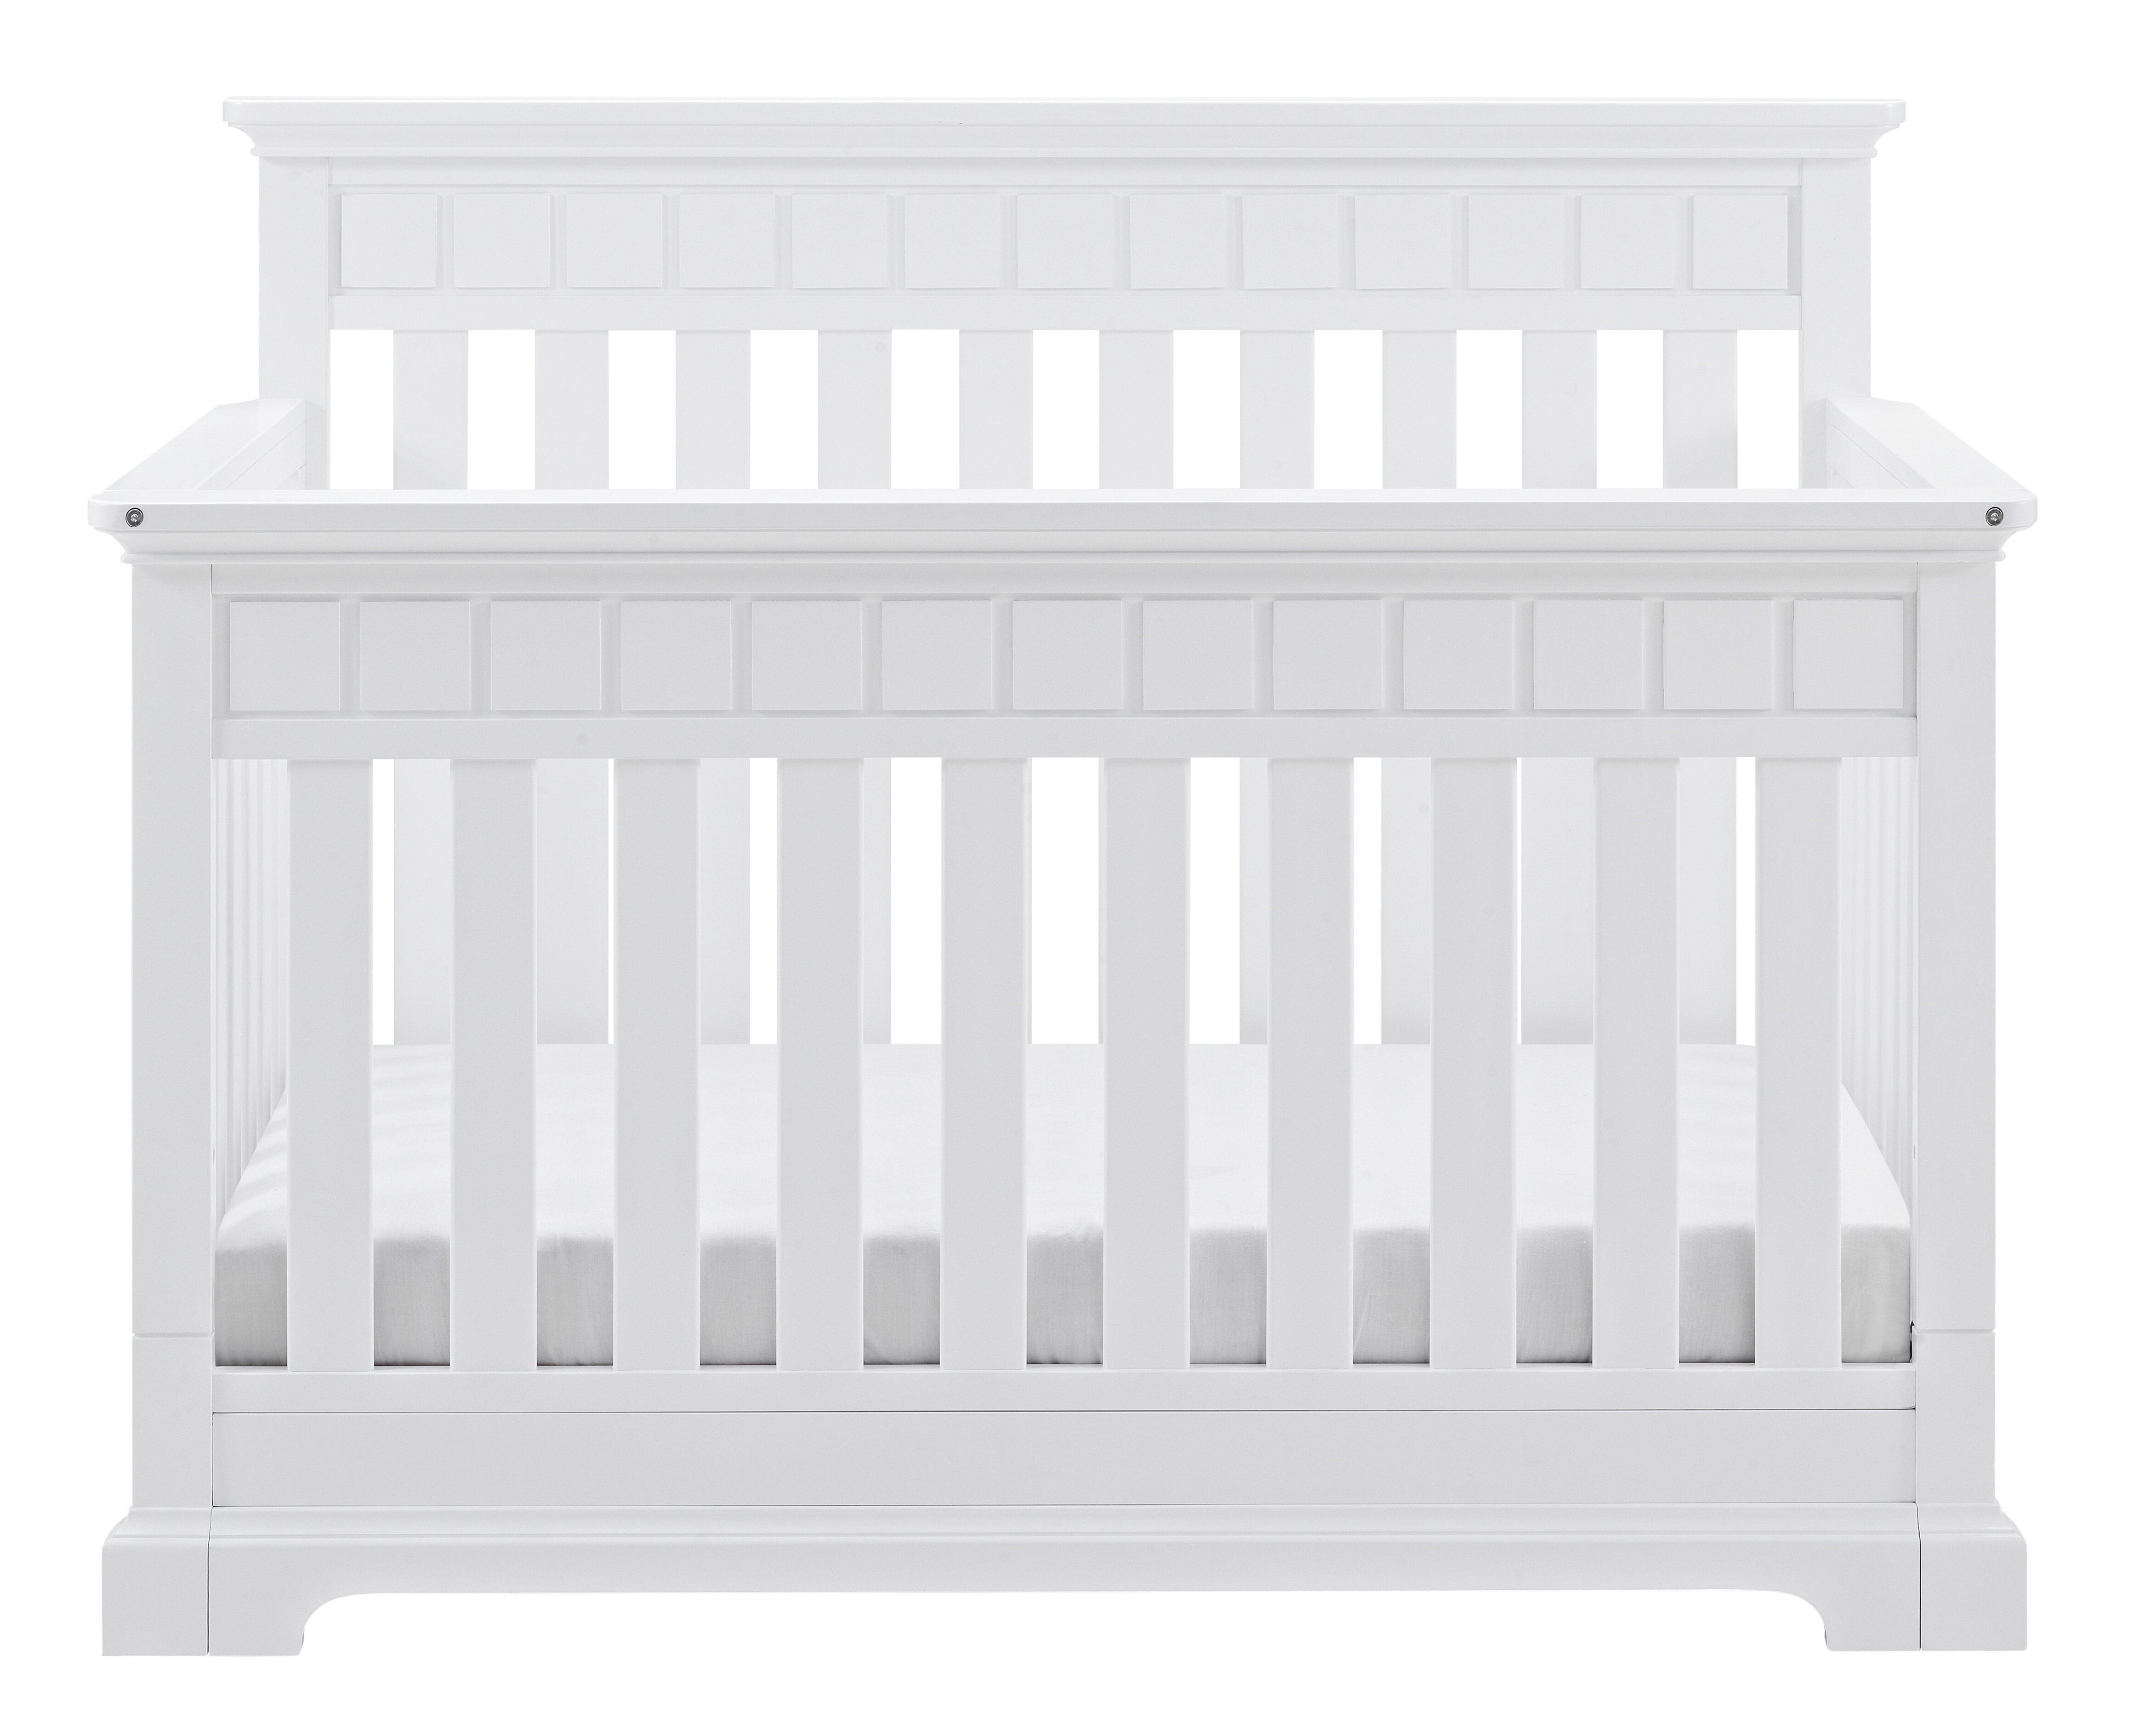 cribs crib close cot for twins if pin in looking through you bunk siblings age see perfect a or are